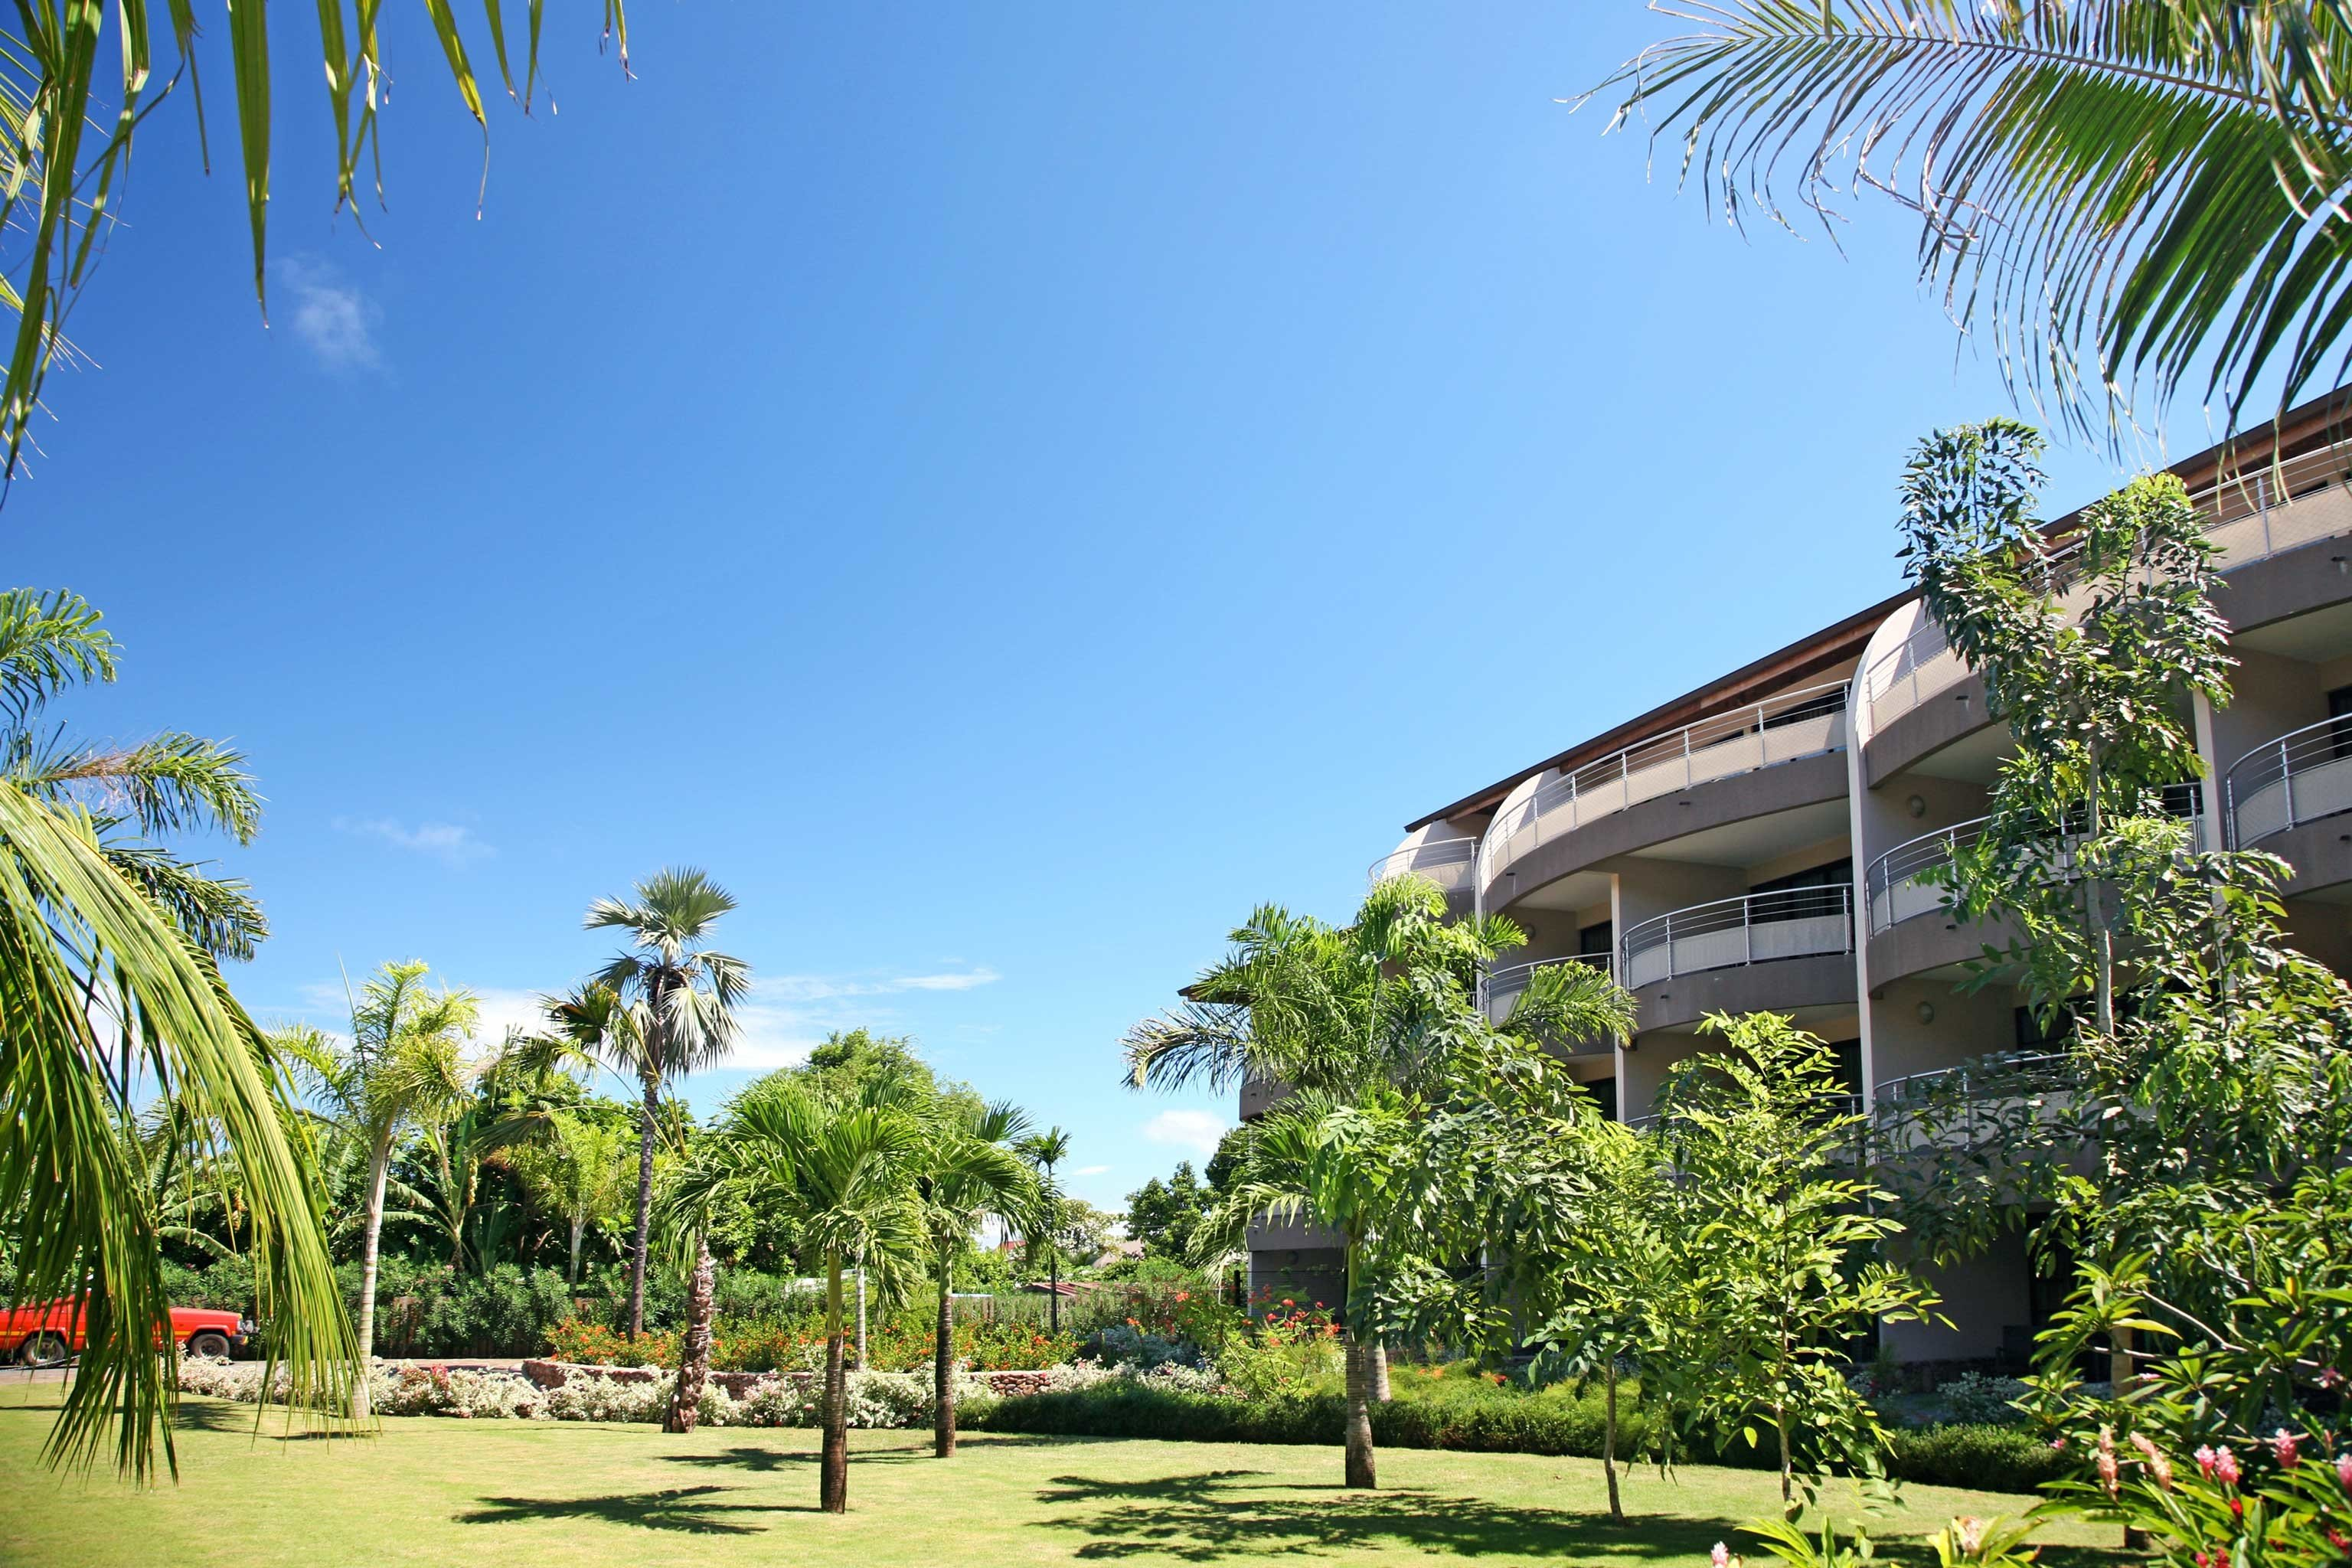 Eco Grounds tree sky palm plant Resort residential area arecales palm family Garden lined sunny shade day